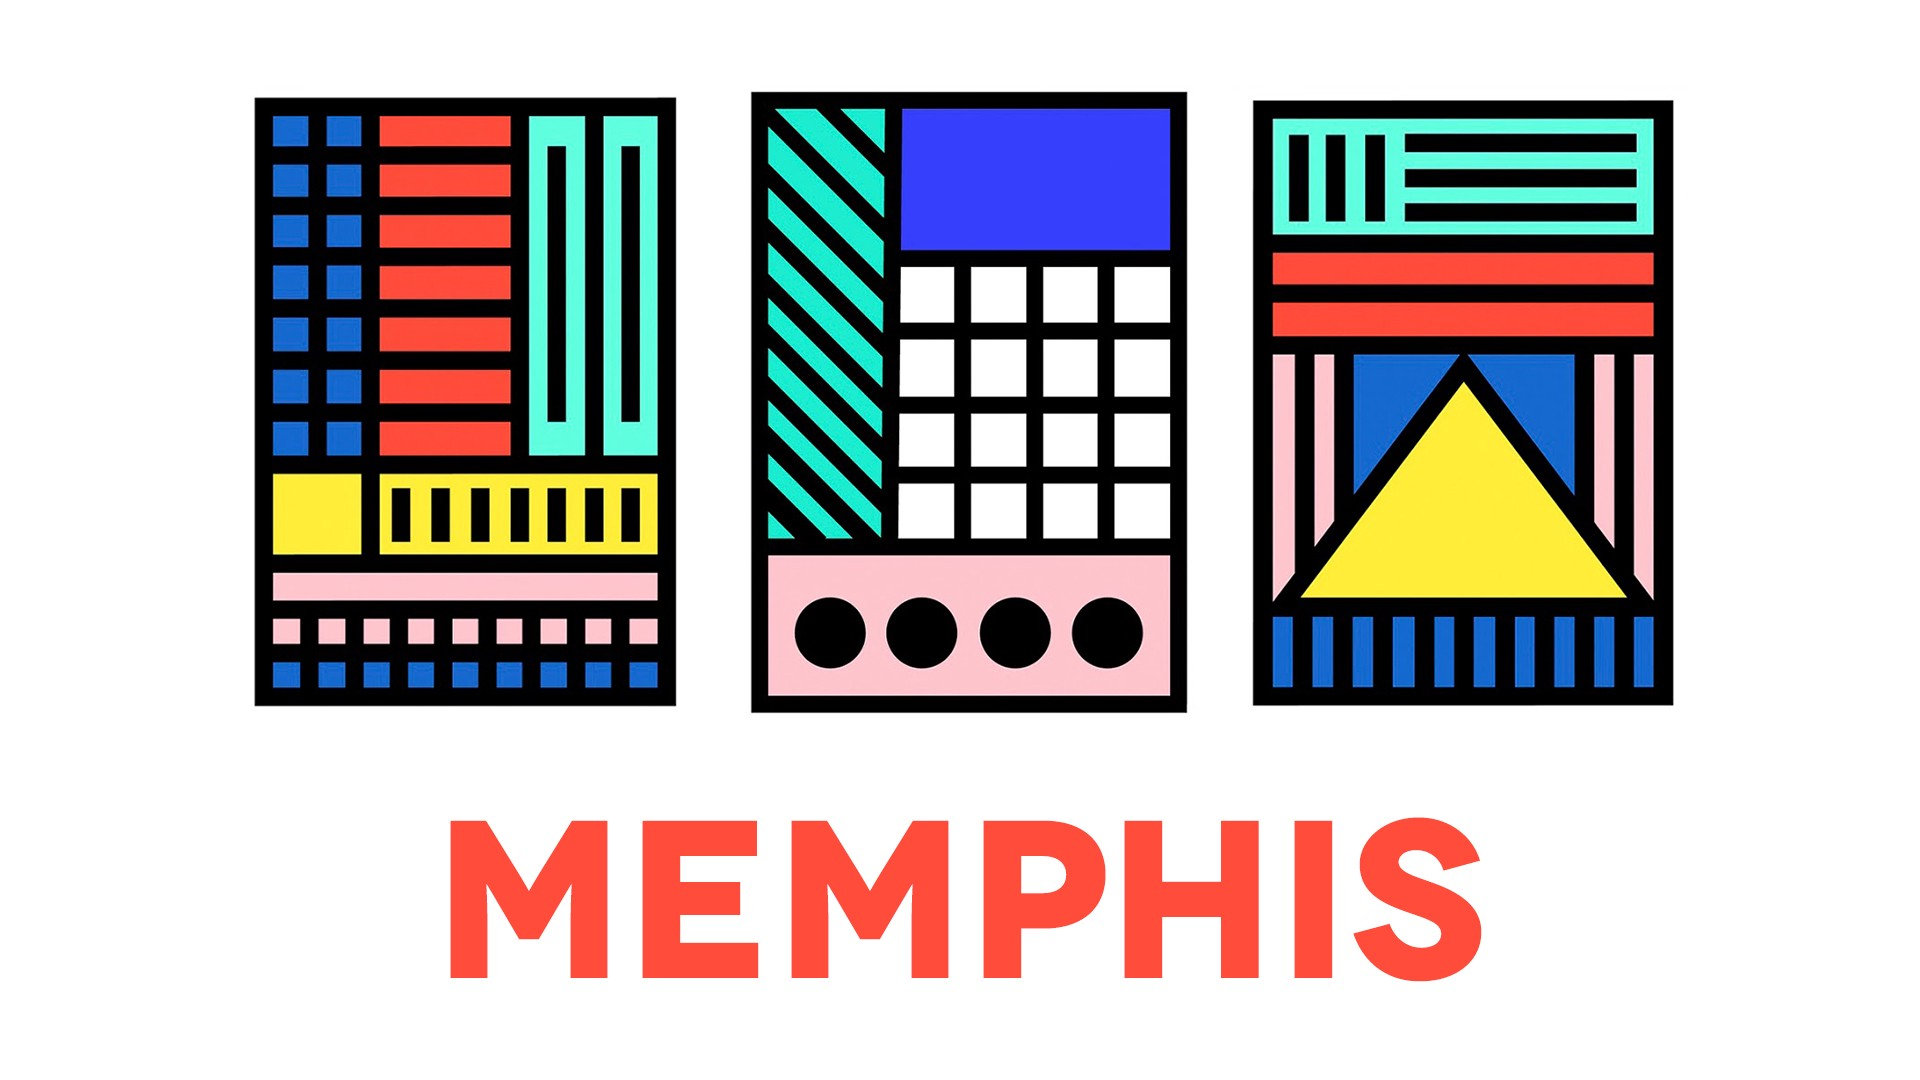 RISE of Vaporwave, Memphis and Brutalism in Design - Shahriyer Shuvo